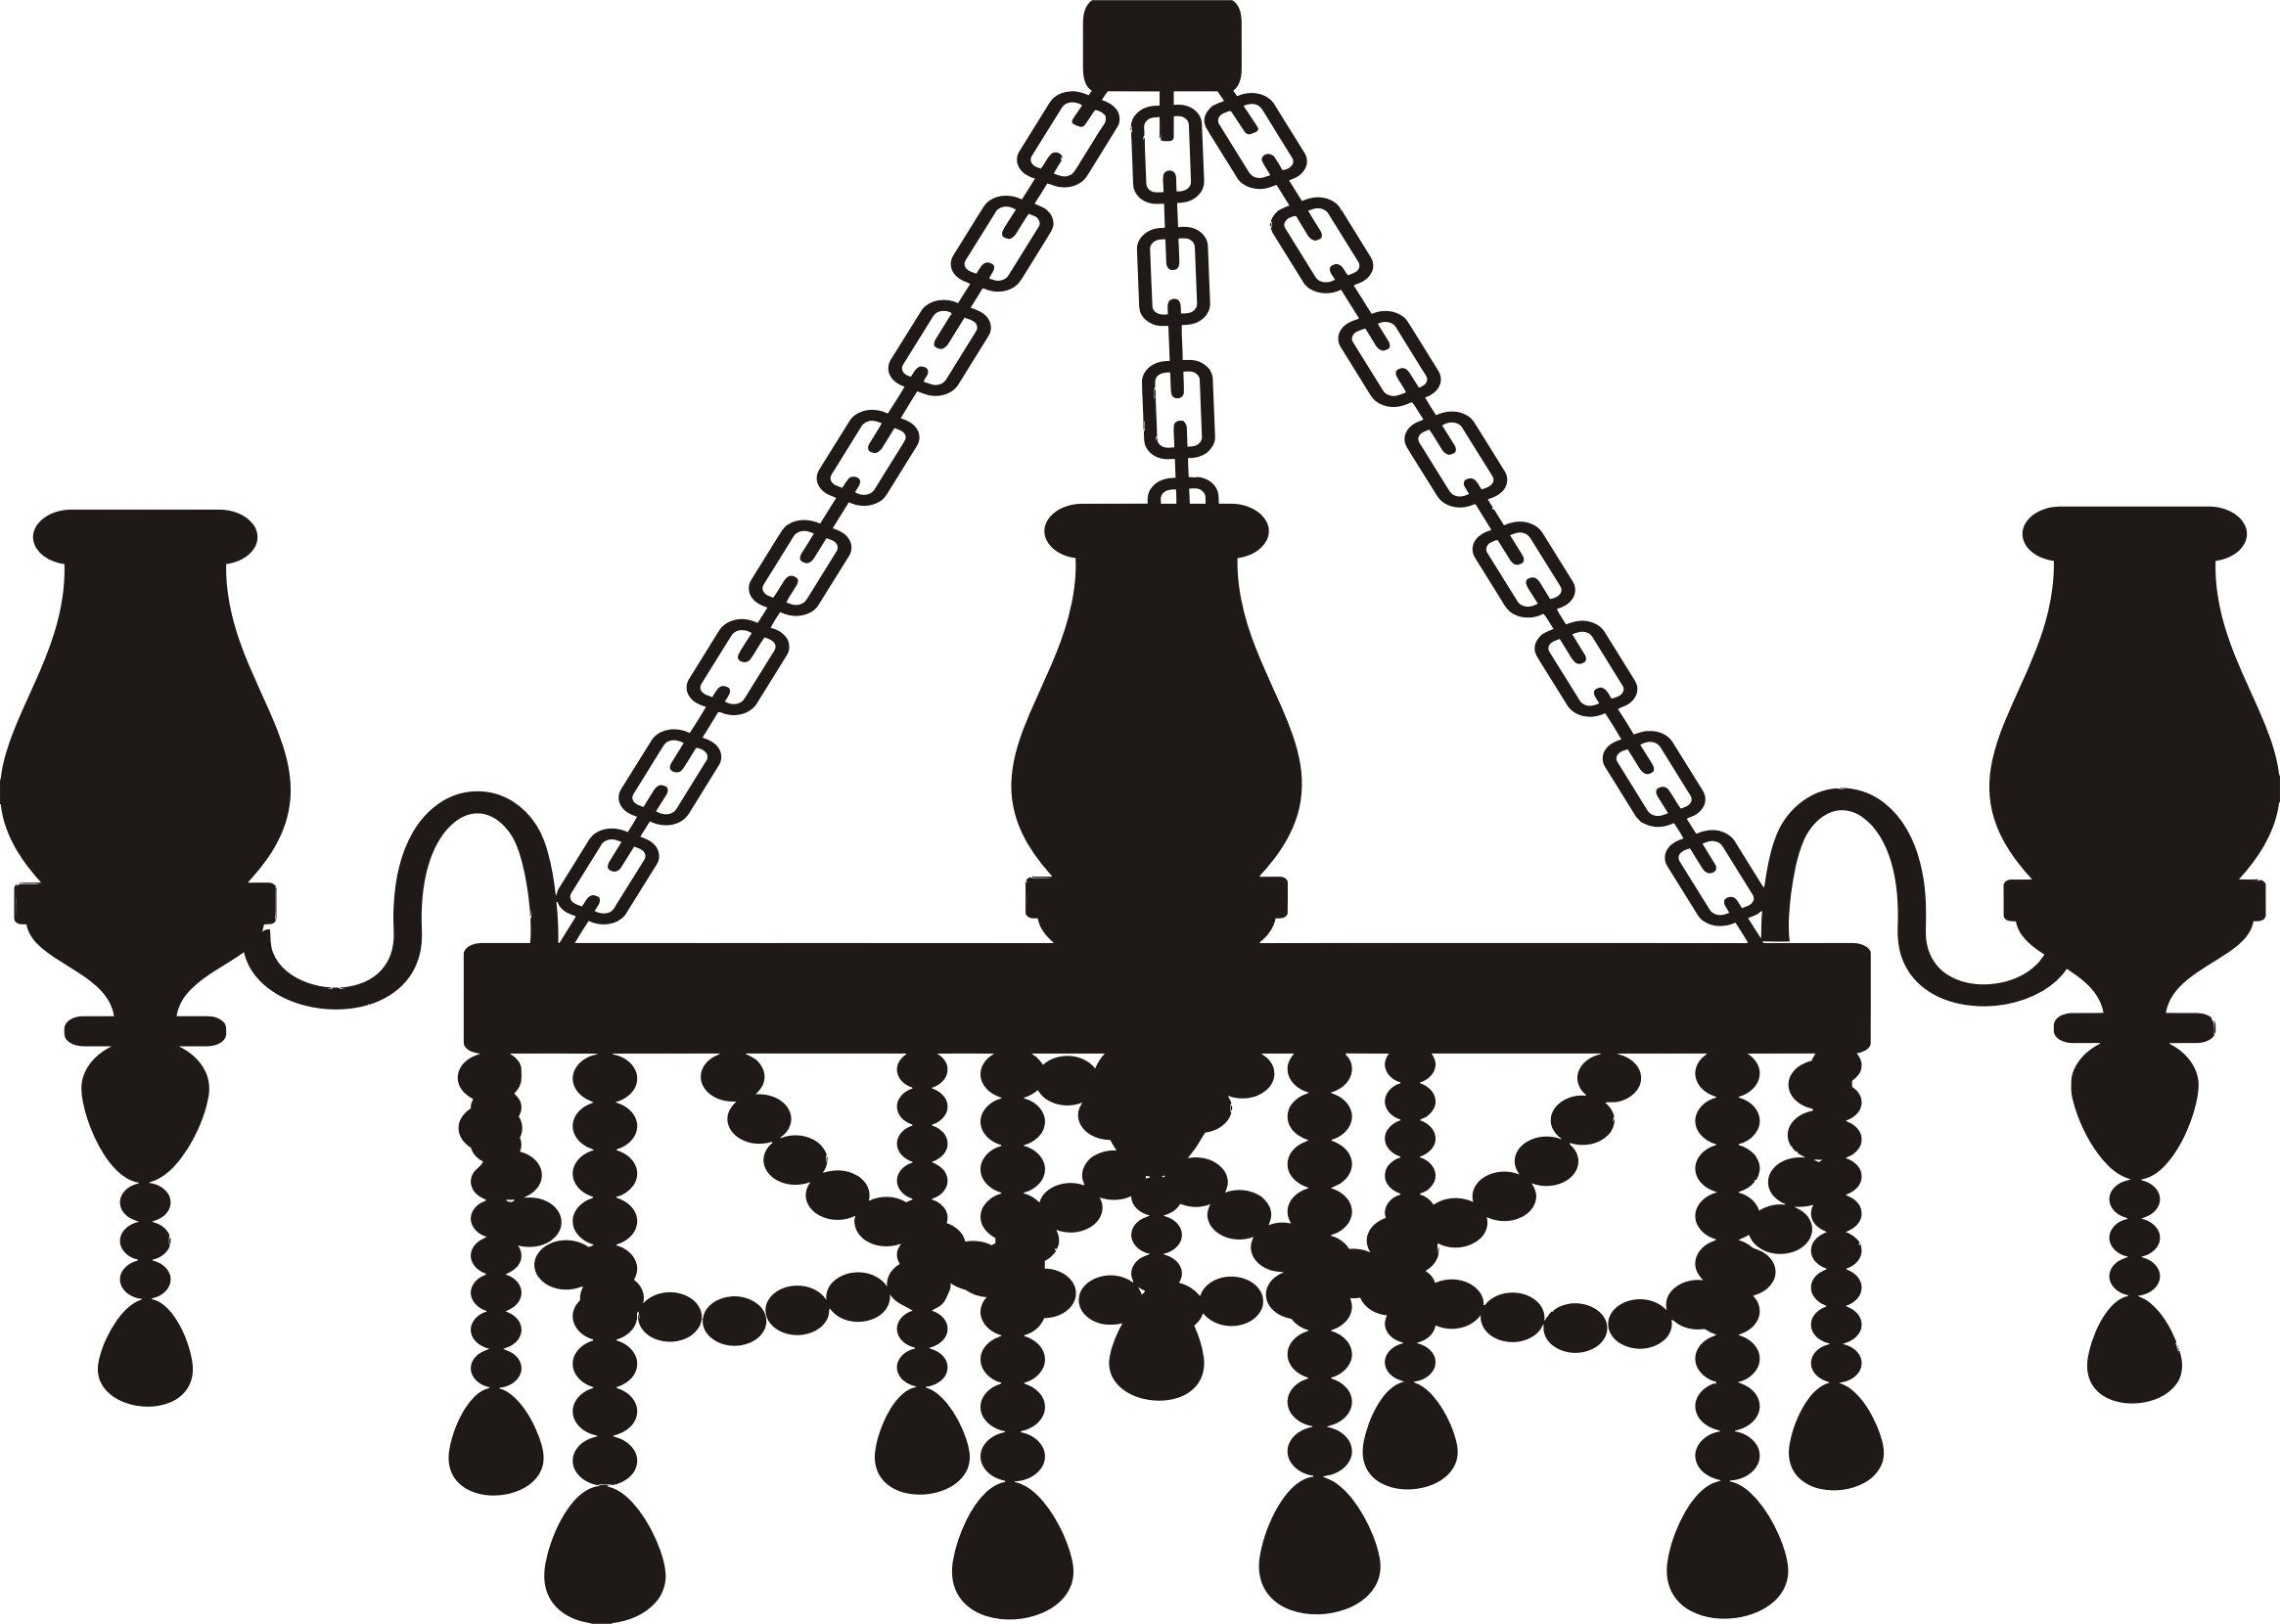 clipart royalty free Silhouette big image png. Chandelier clipart.